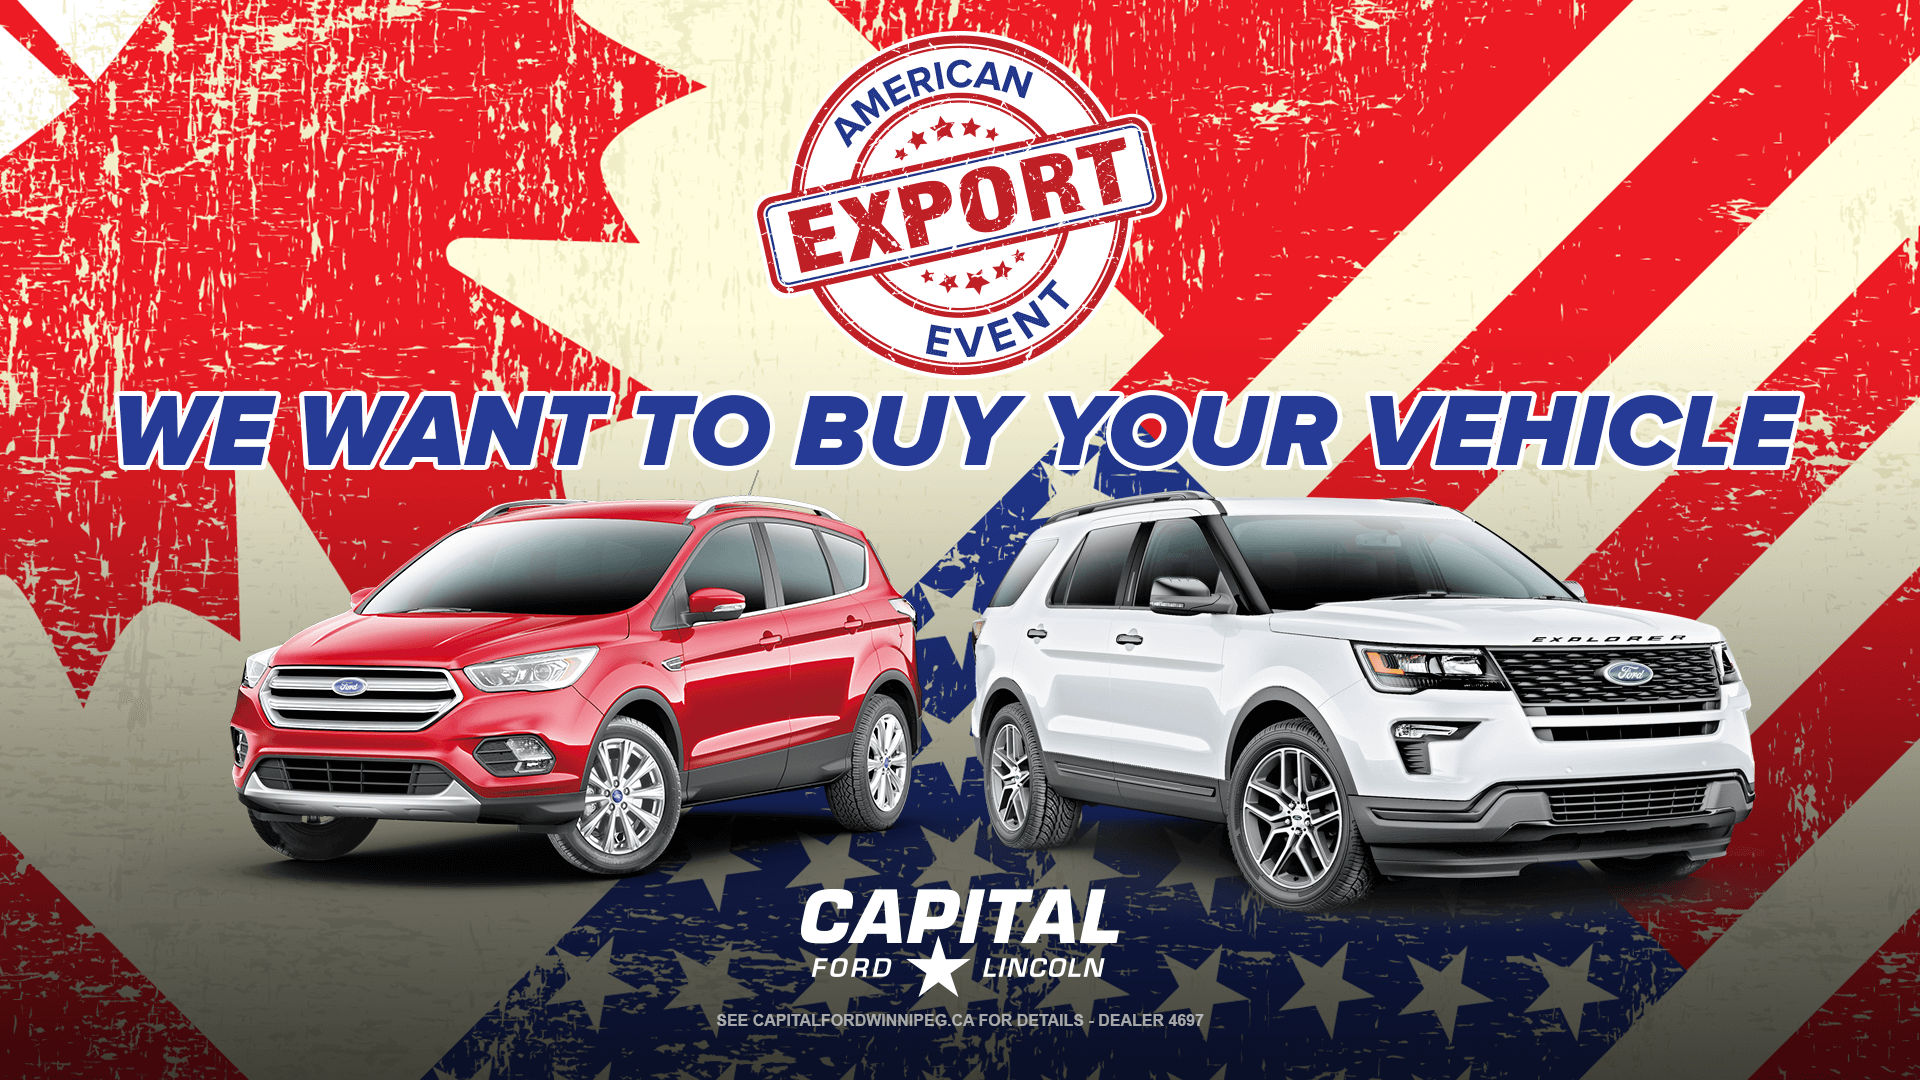 American Export Event - We Want to Buy Your Vehicle